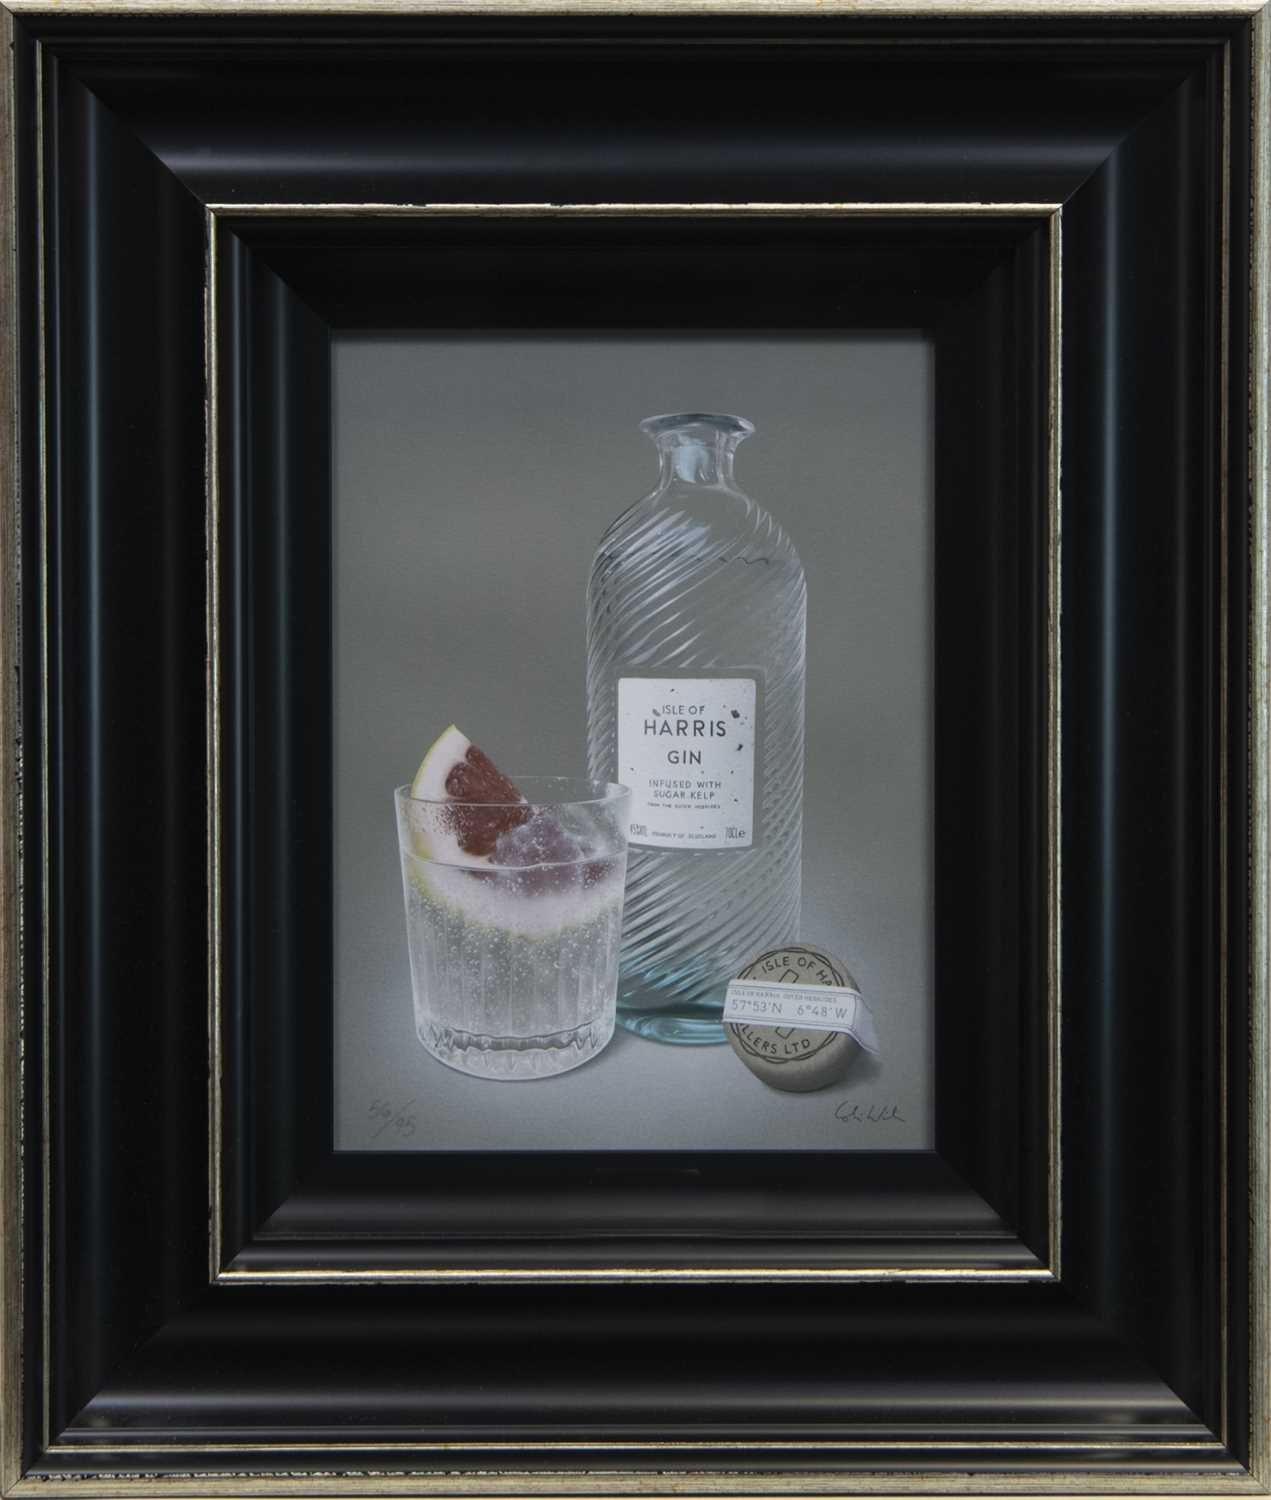 Lot 87 - GLORIOUS HARRIS GIN & GRAPEFRUIT, A GICLEE PRINT BY COLIN WILSON